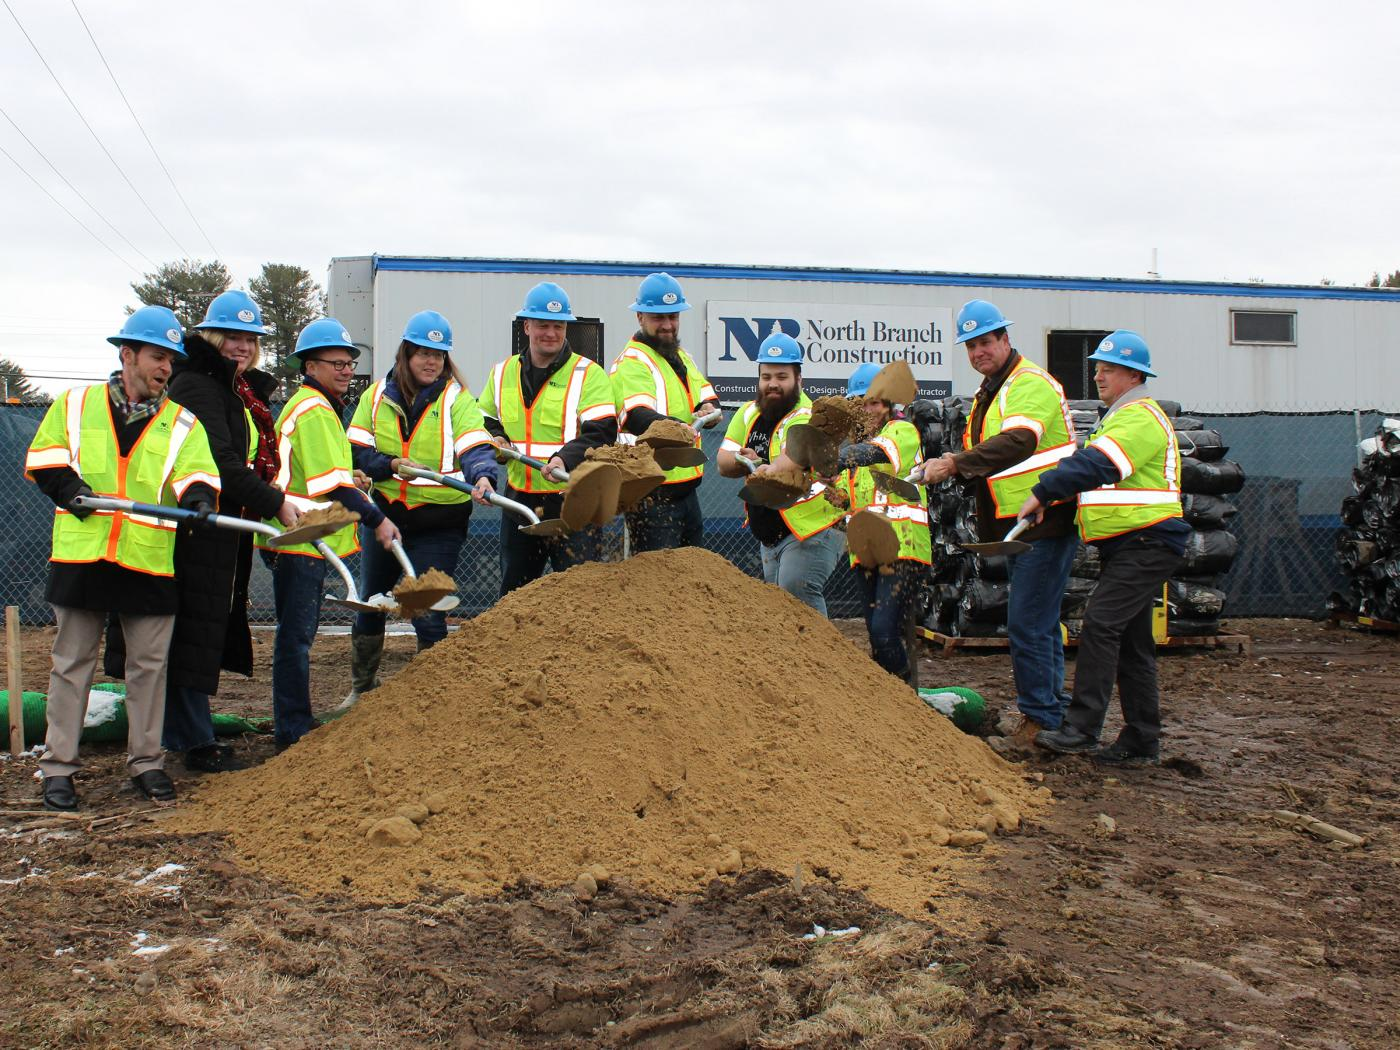 North Branch Construction Celebrates Groundbreaking at White Birch Armory in Dover, NH